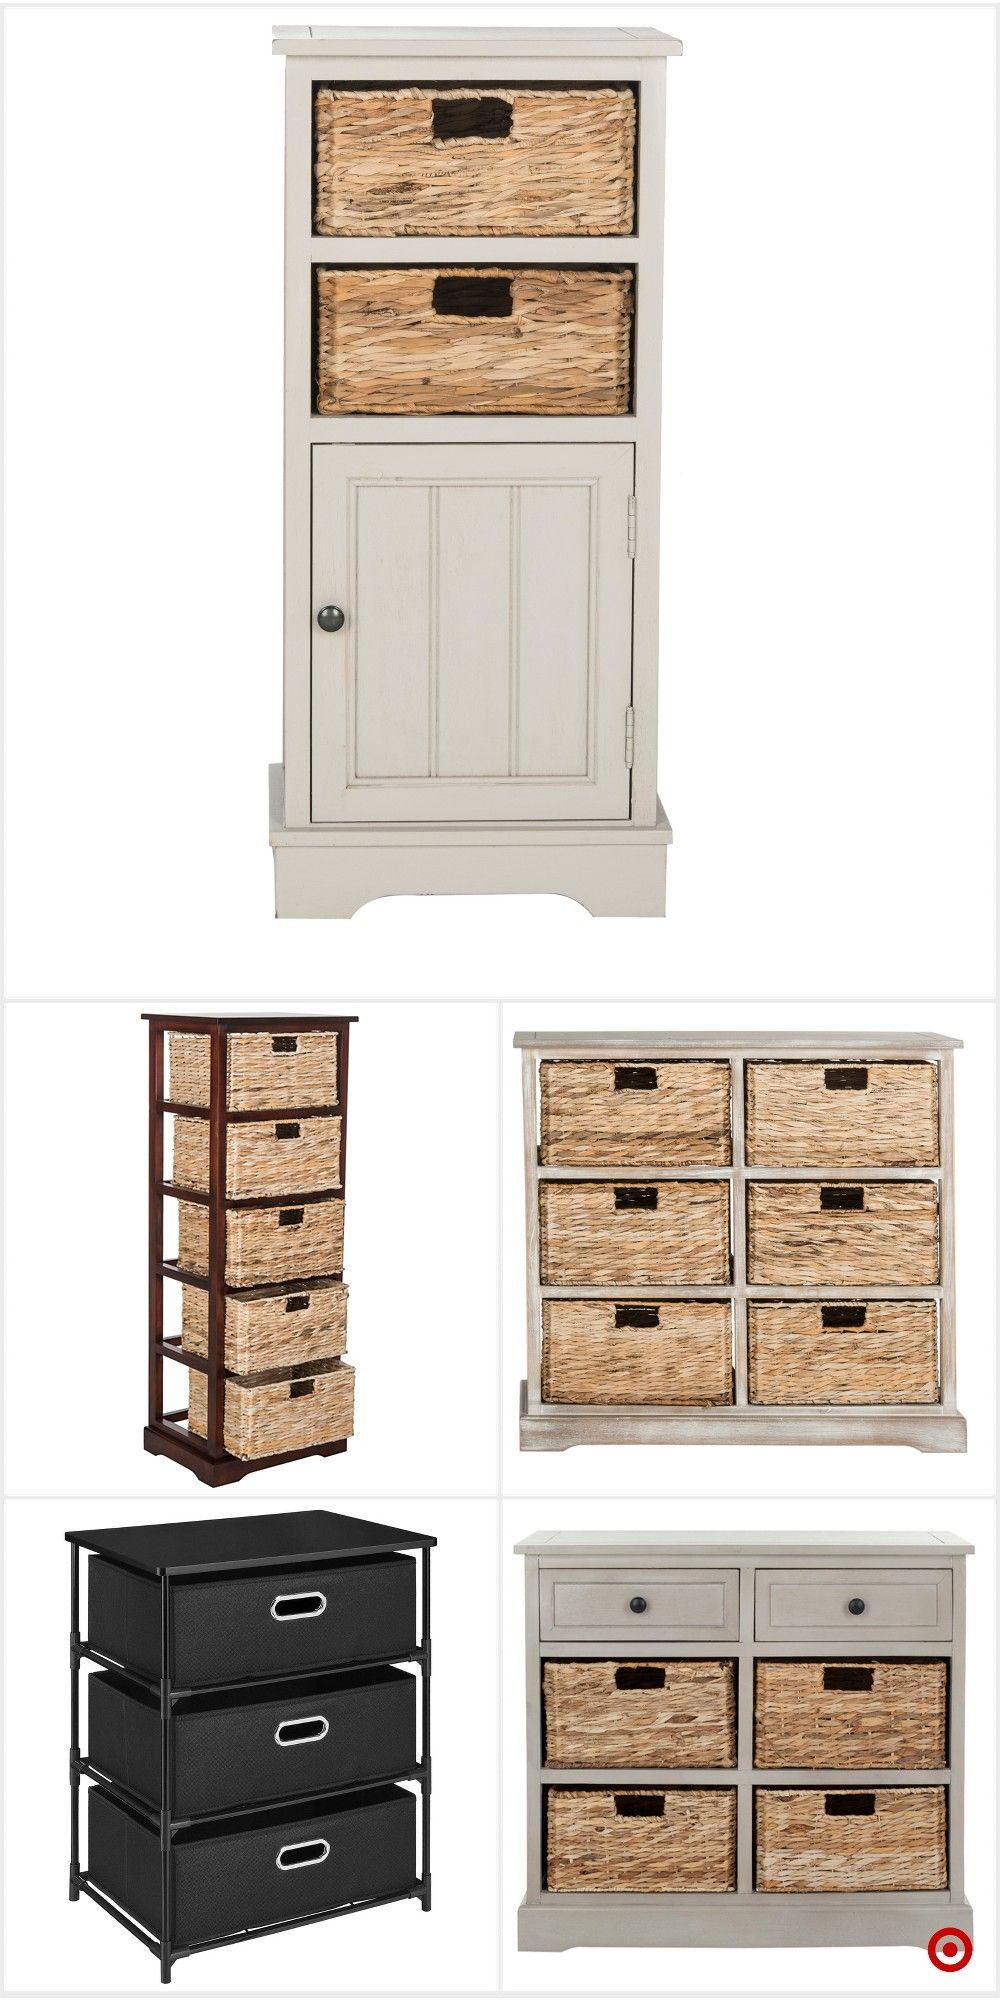 of sale for me target drawers chest organizer fancy luxury near drawer cardboard new antique dresser dressers